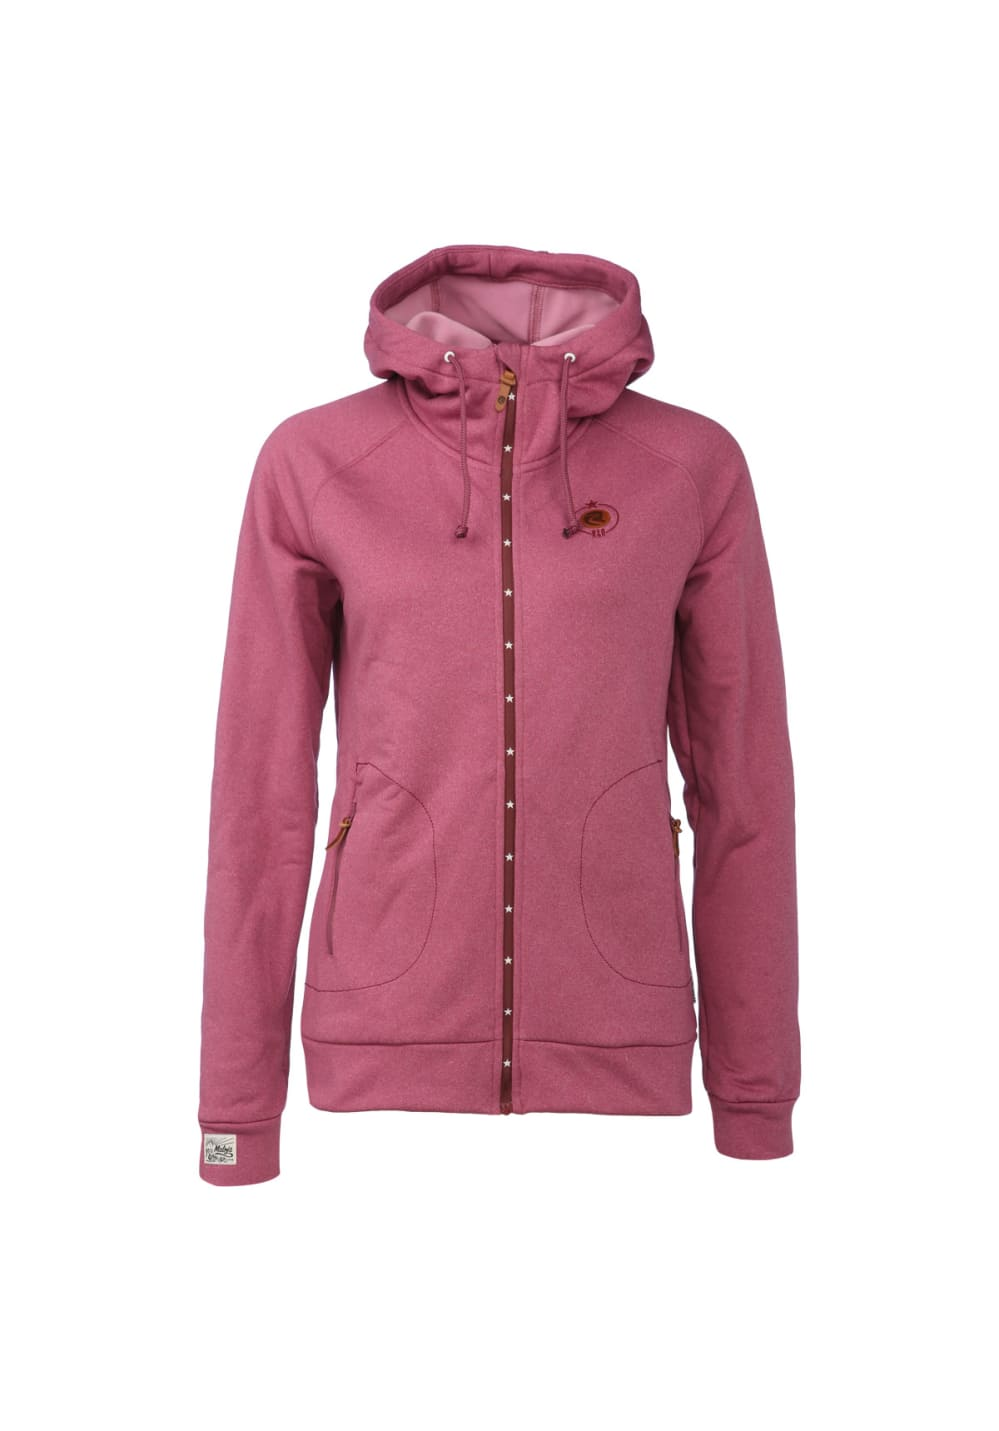 Maloja KathyM. Hooded Fleece Jacket - Laufjacken für Damen - Rot, Gr. L